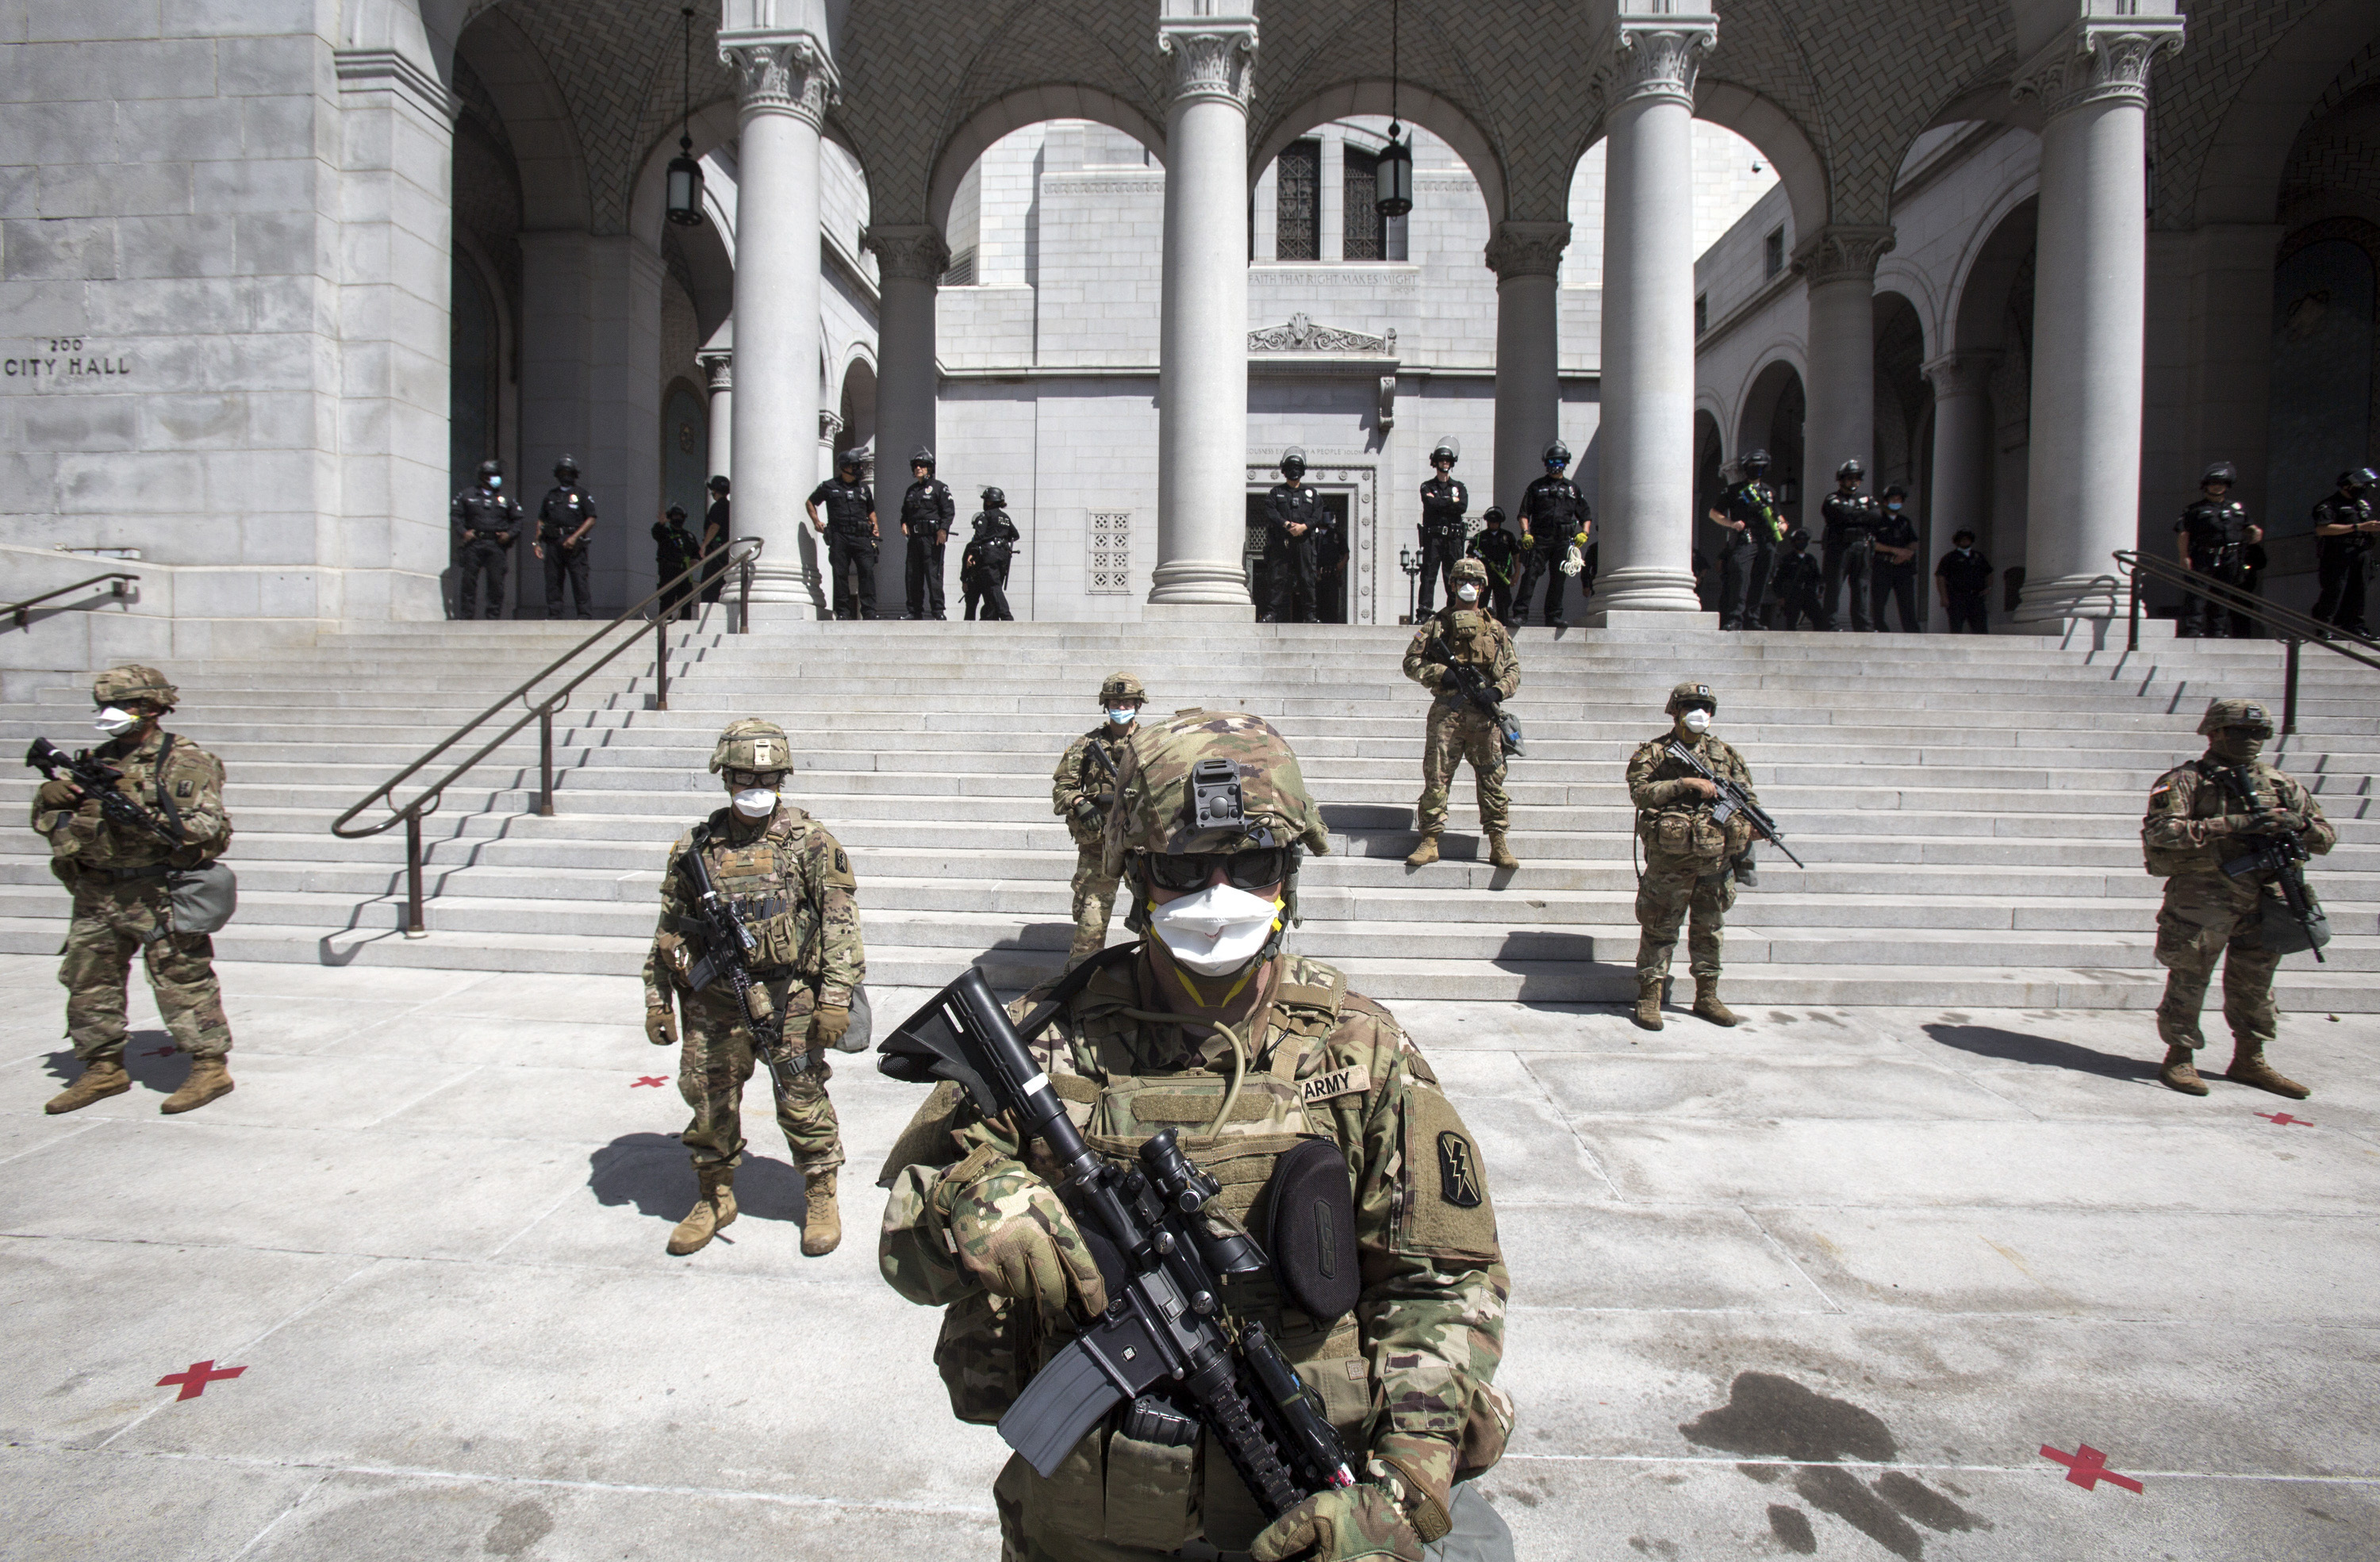 Members of California National Guard stand outside the City Hall, Sunday, May 31, in Los Angeles.